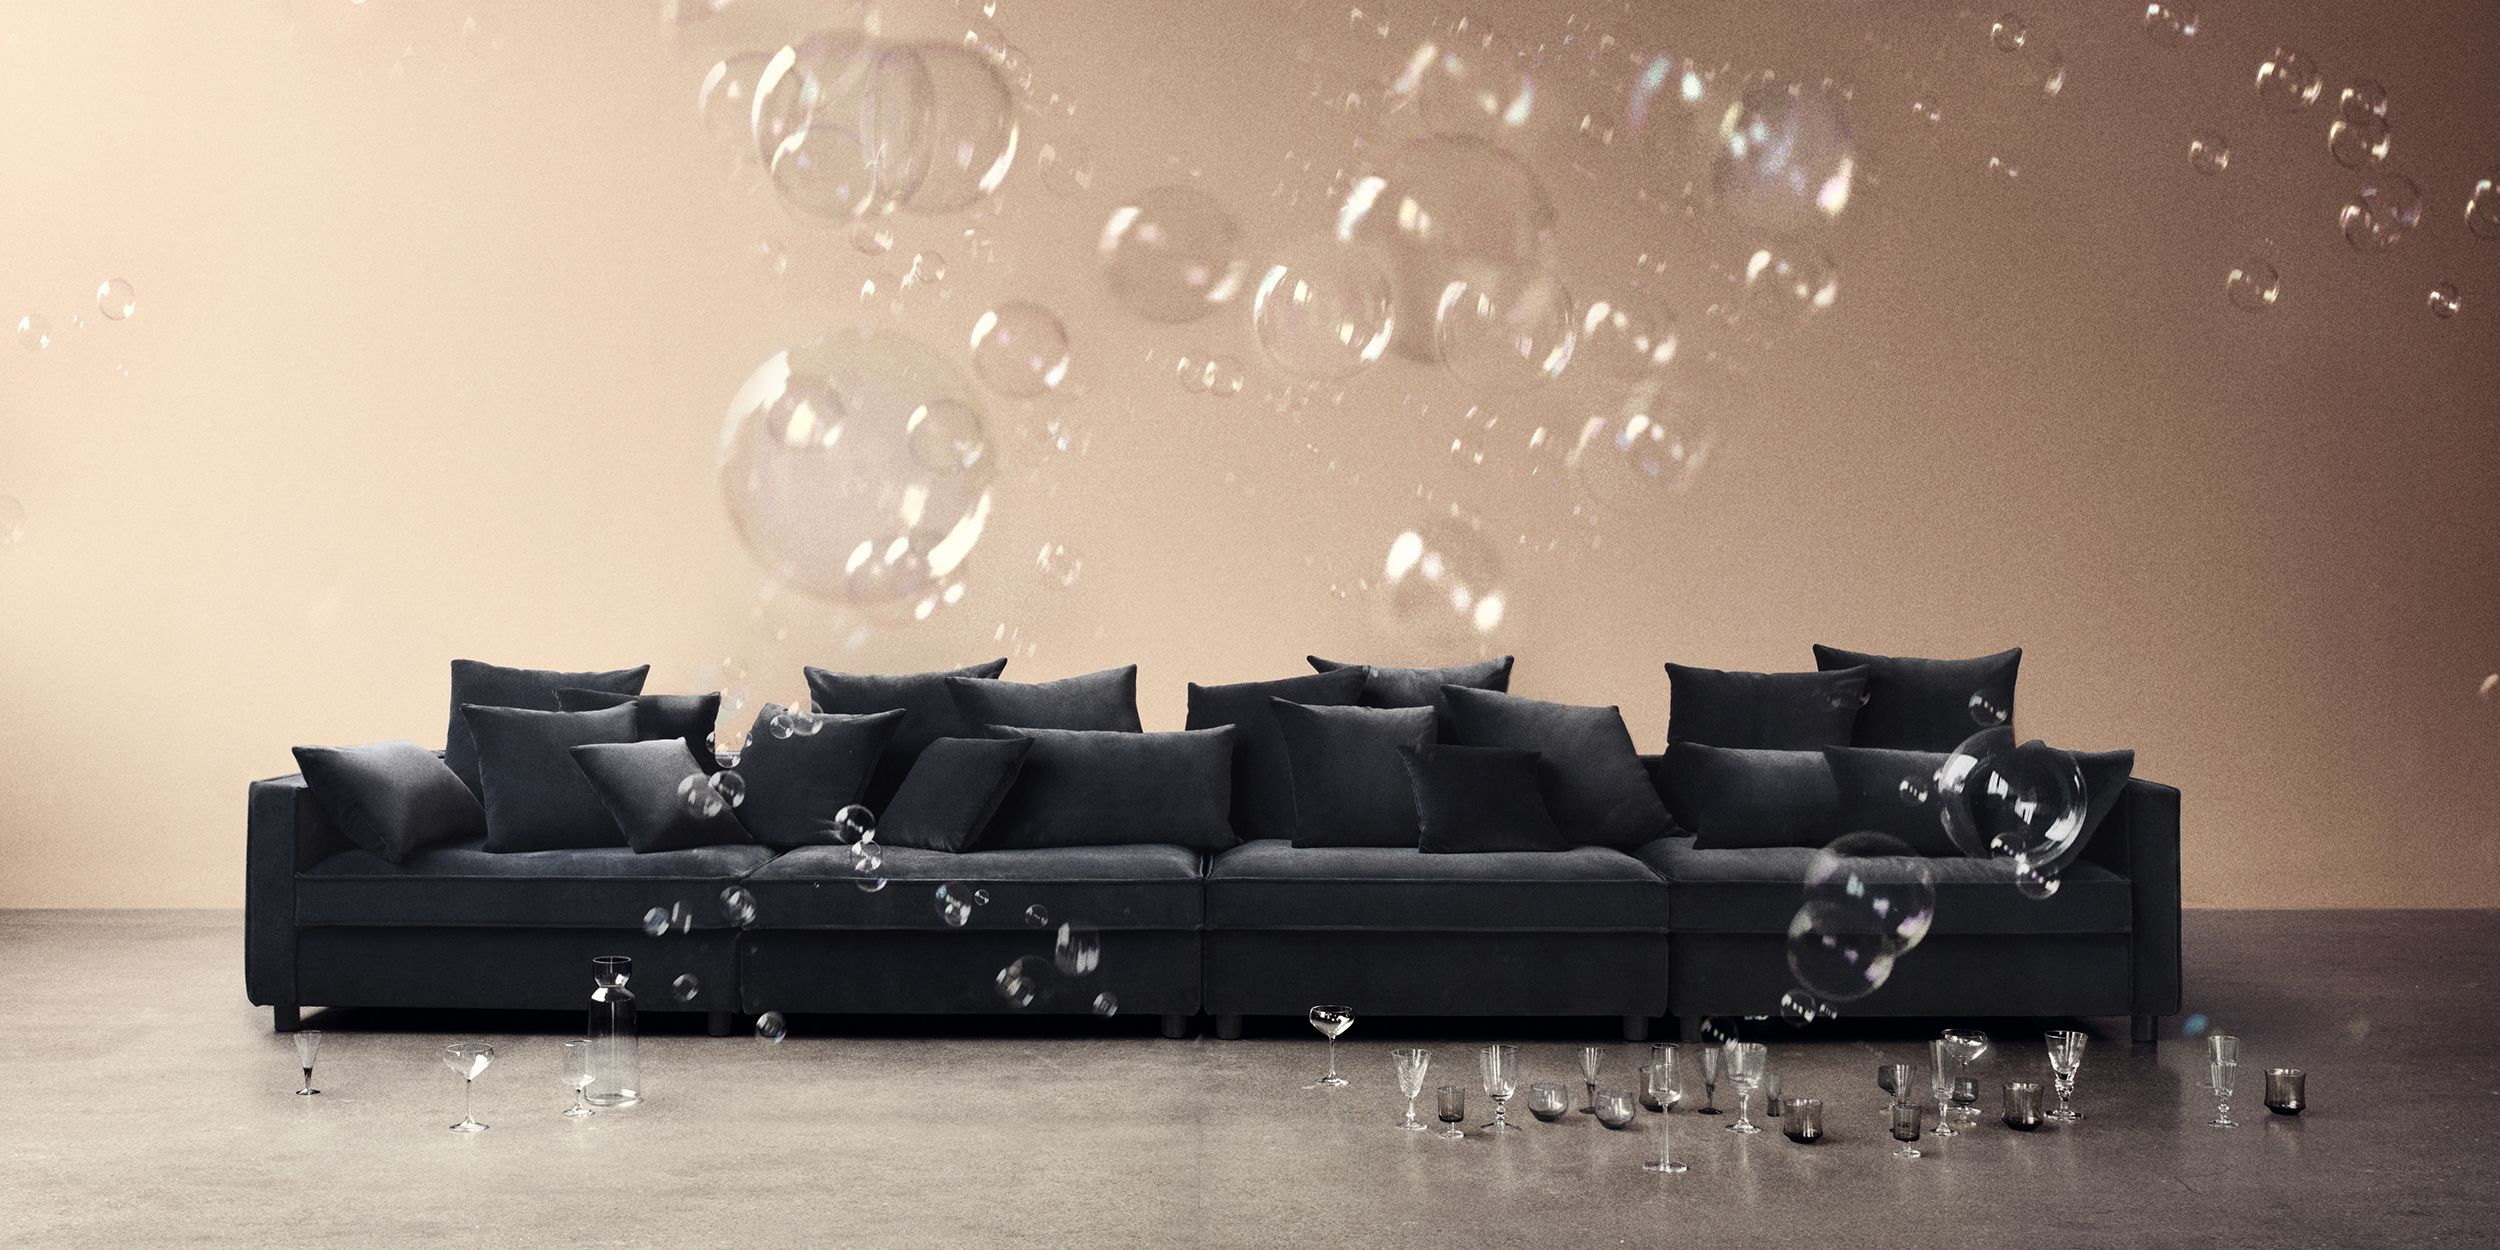 Mr Big Sofa By Danish Design Duo Says Who Here Shown In Our Velour